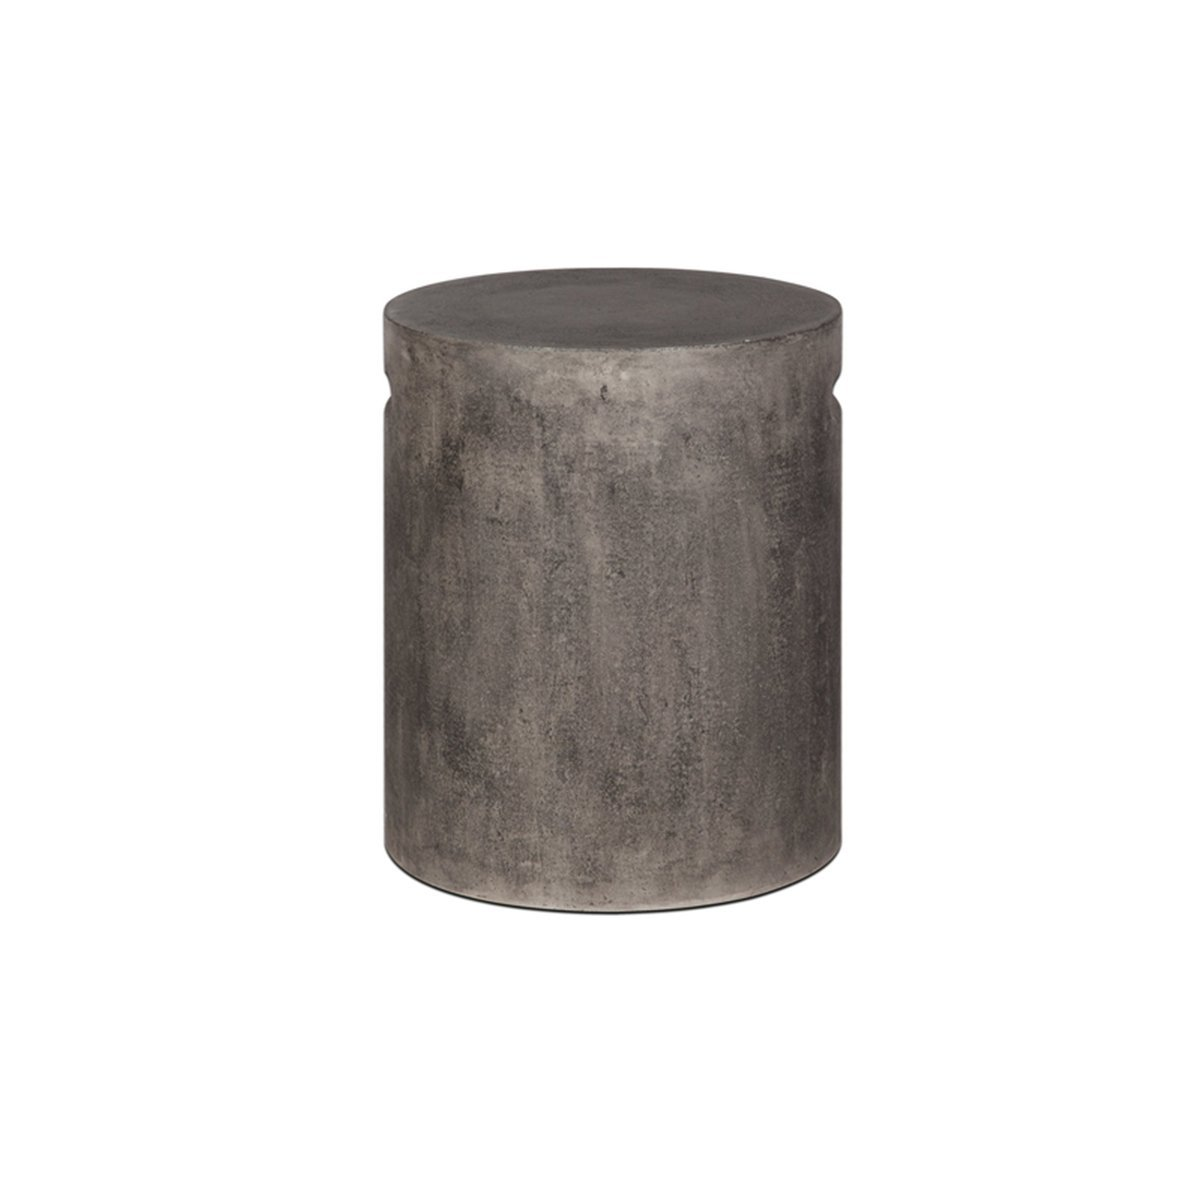 ROUND STOOL WITH HANDLE - Showhome Furniture